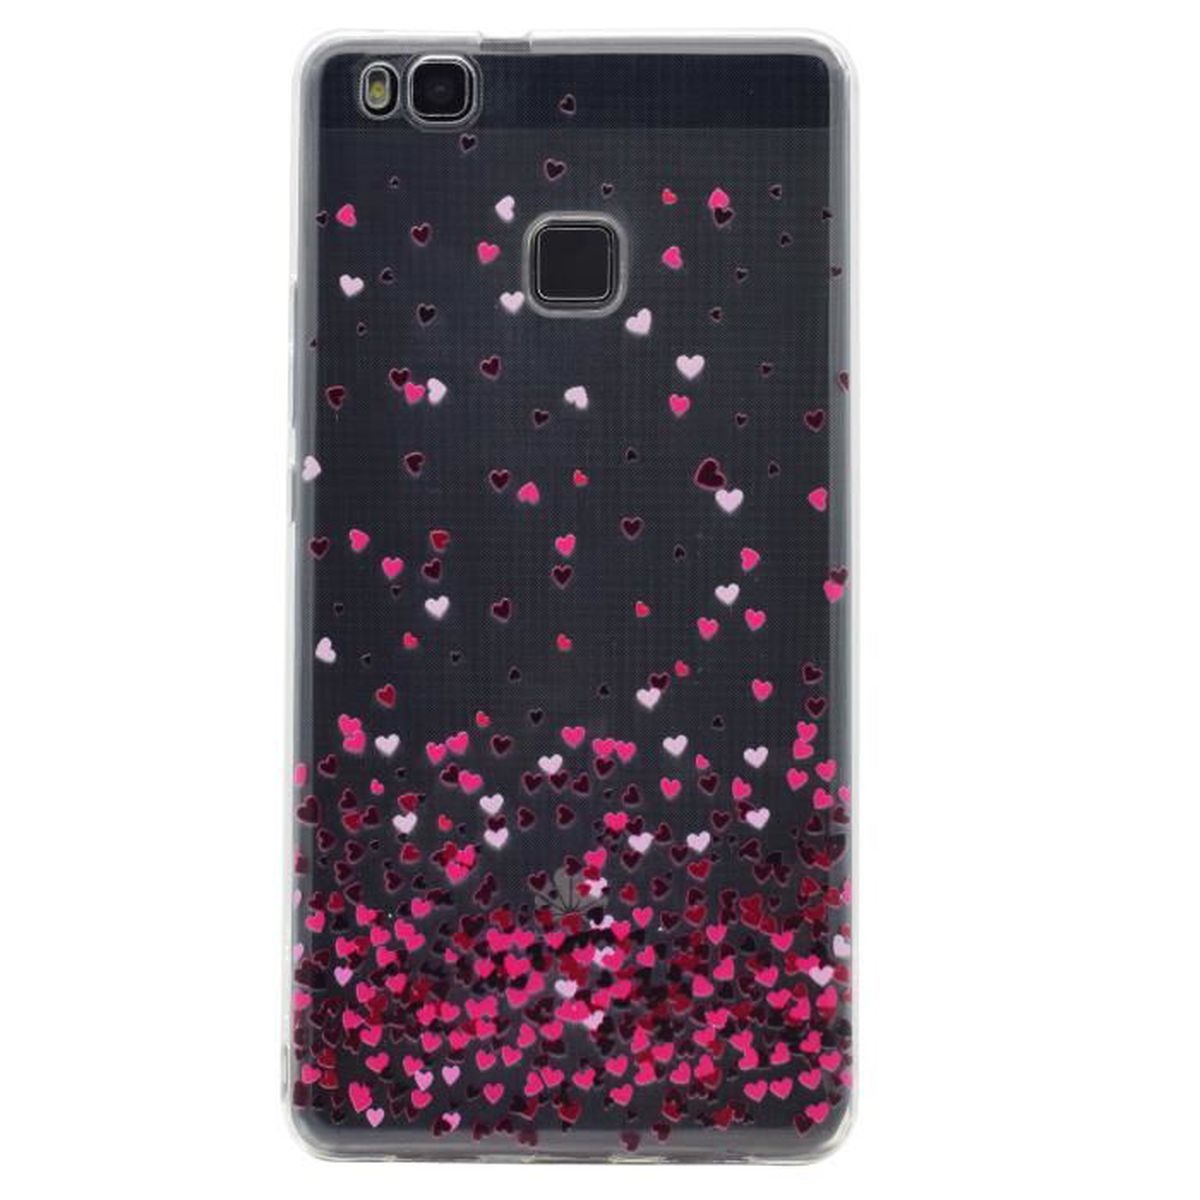 coque silicone intégrale huawei p10